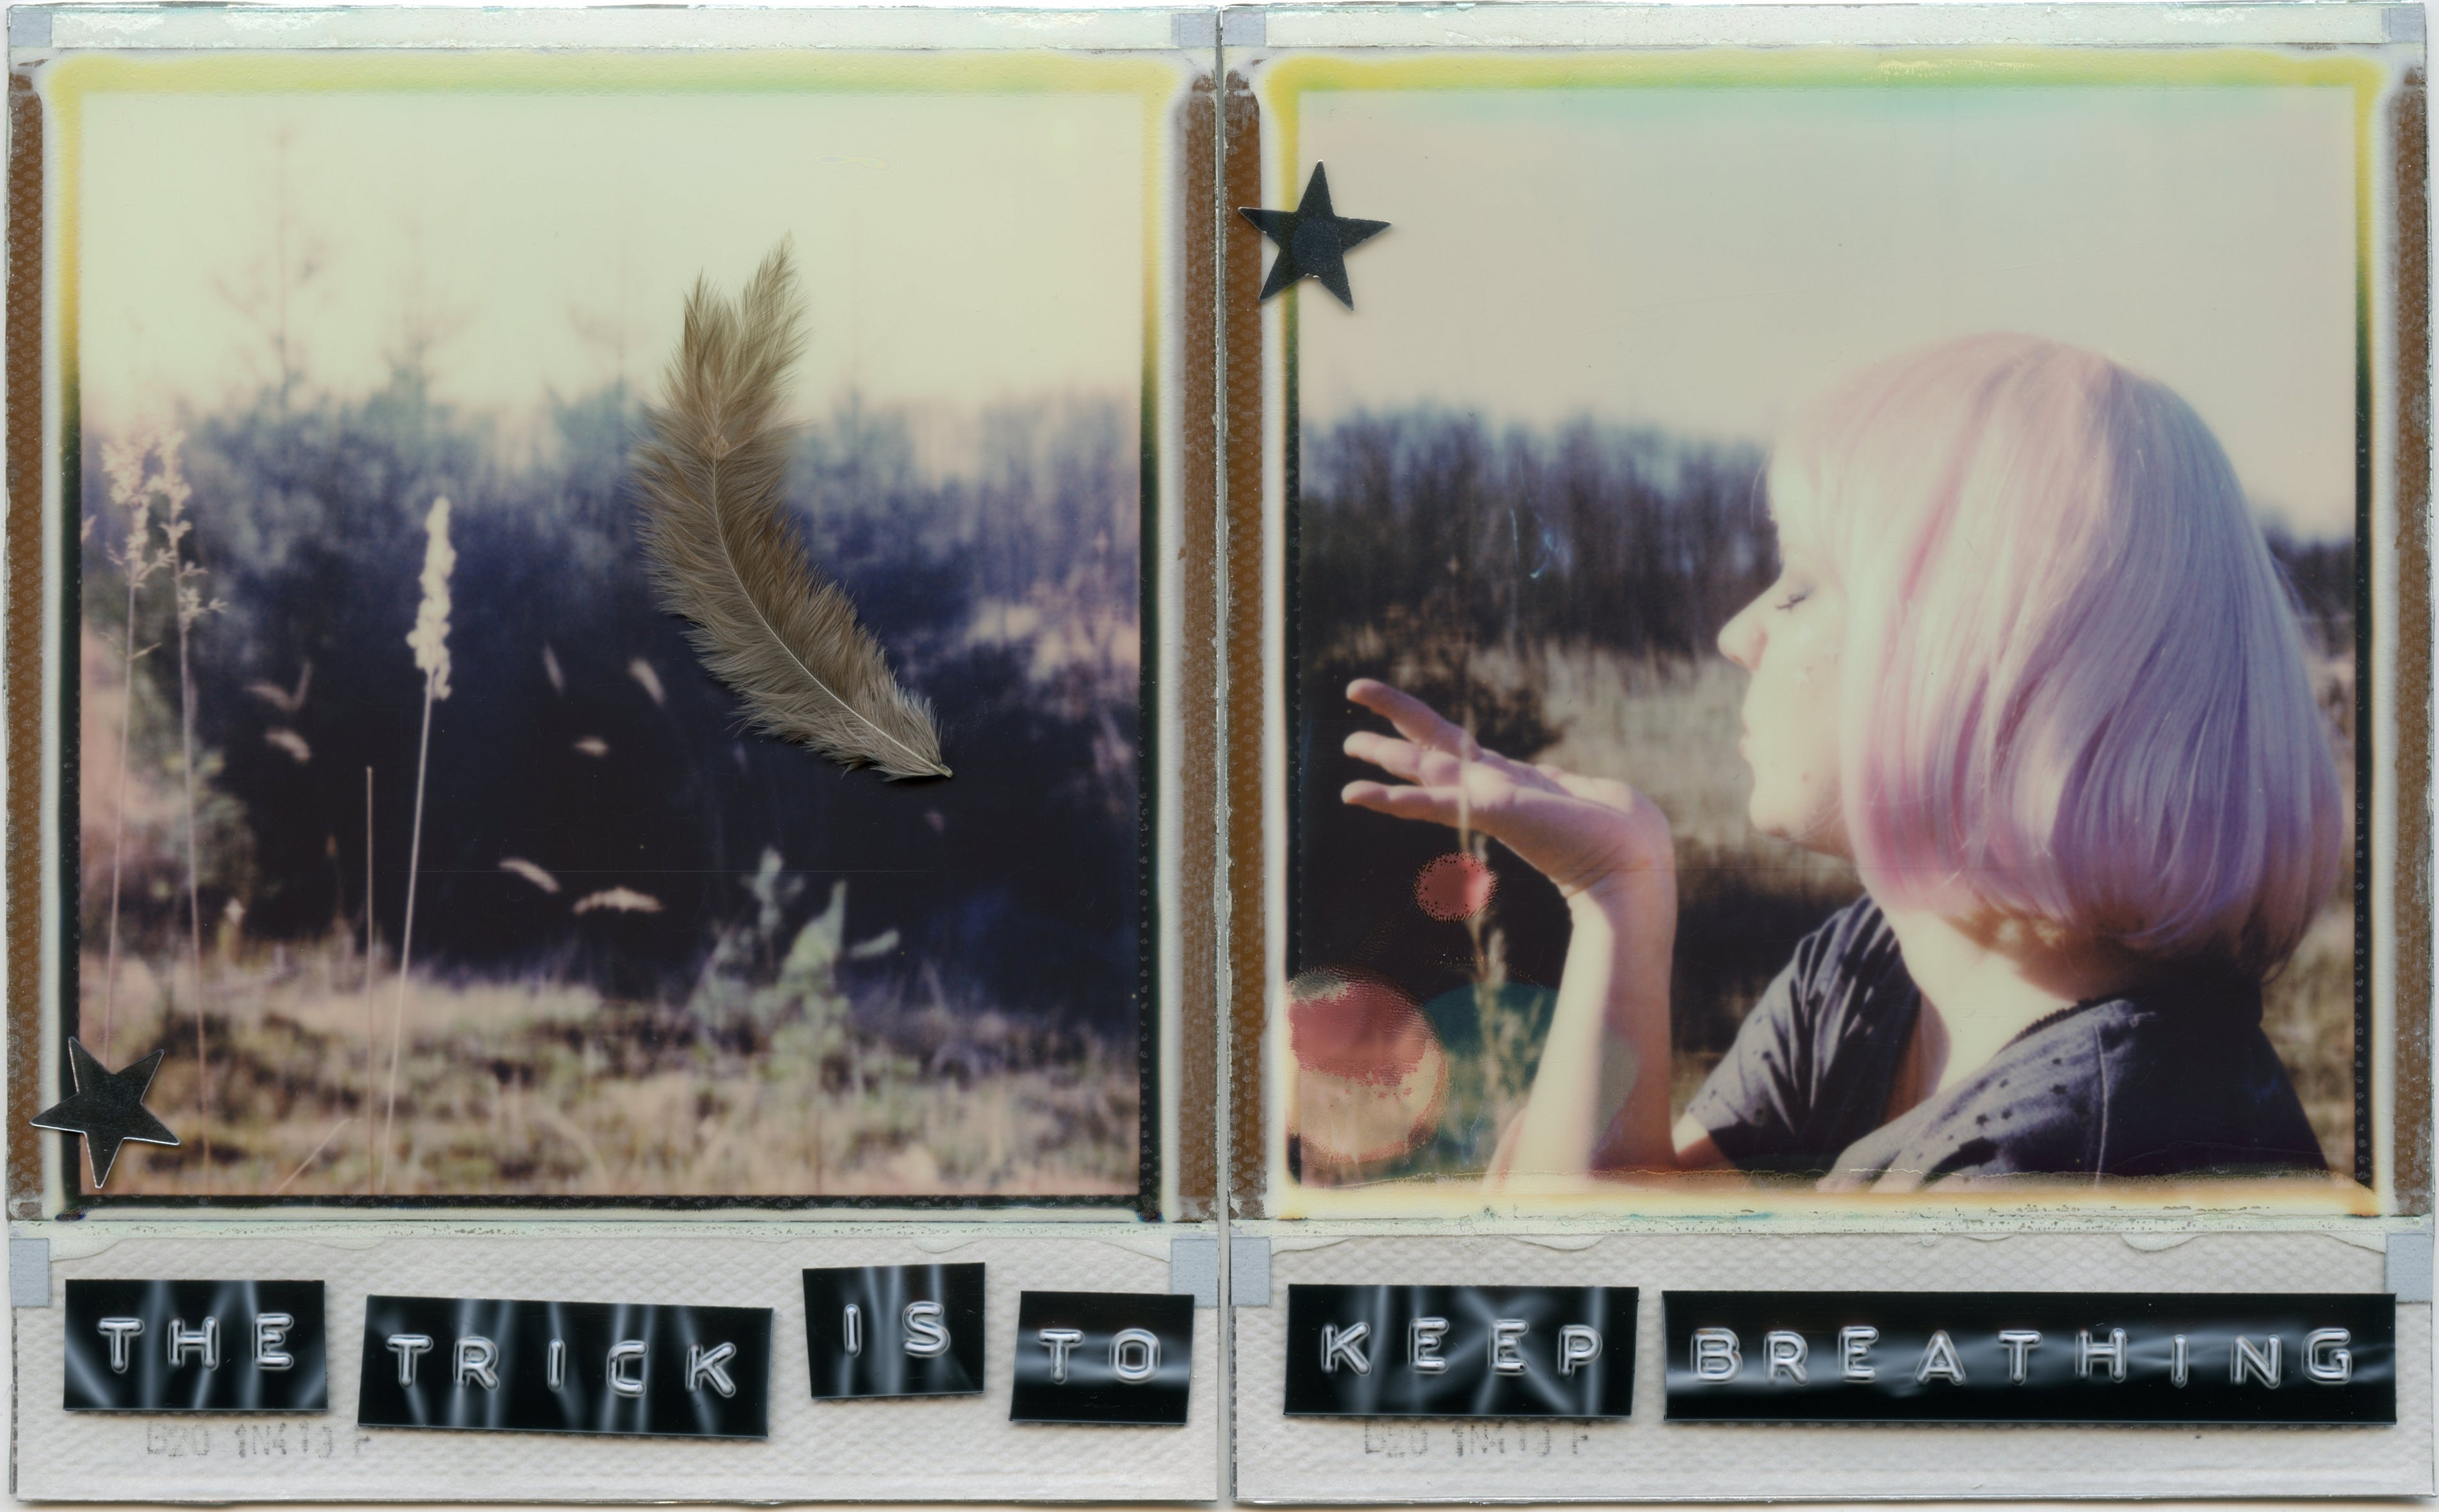 The Trick Is To Keep Breathing - based on 2 Polaroids